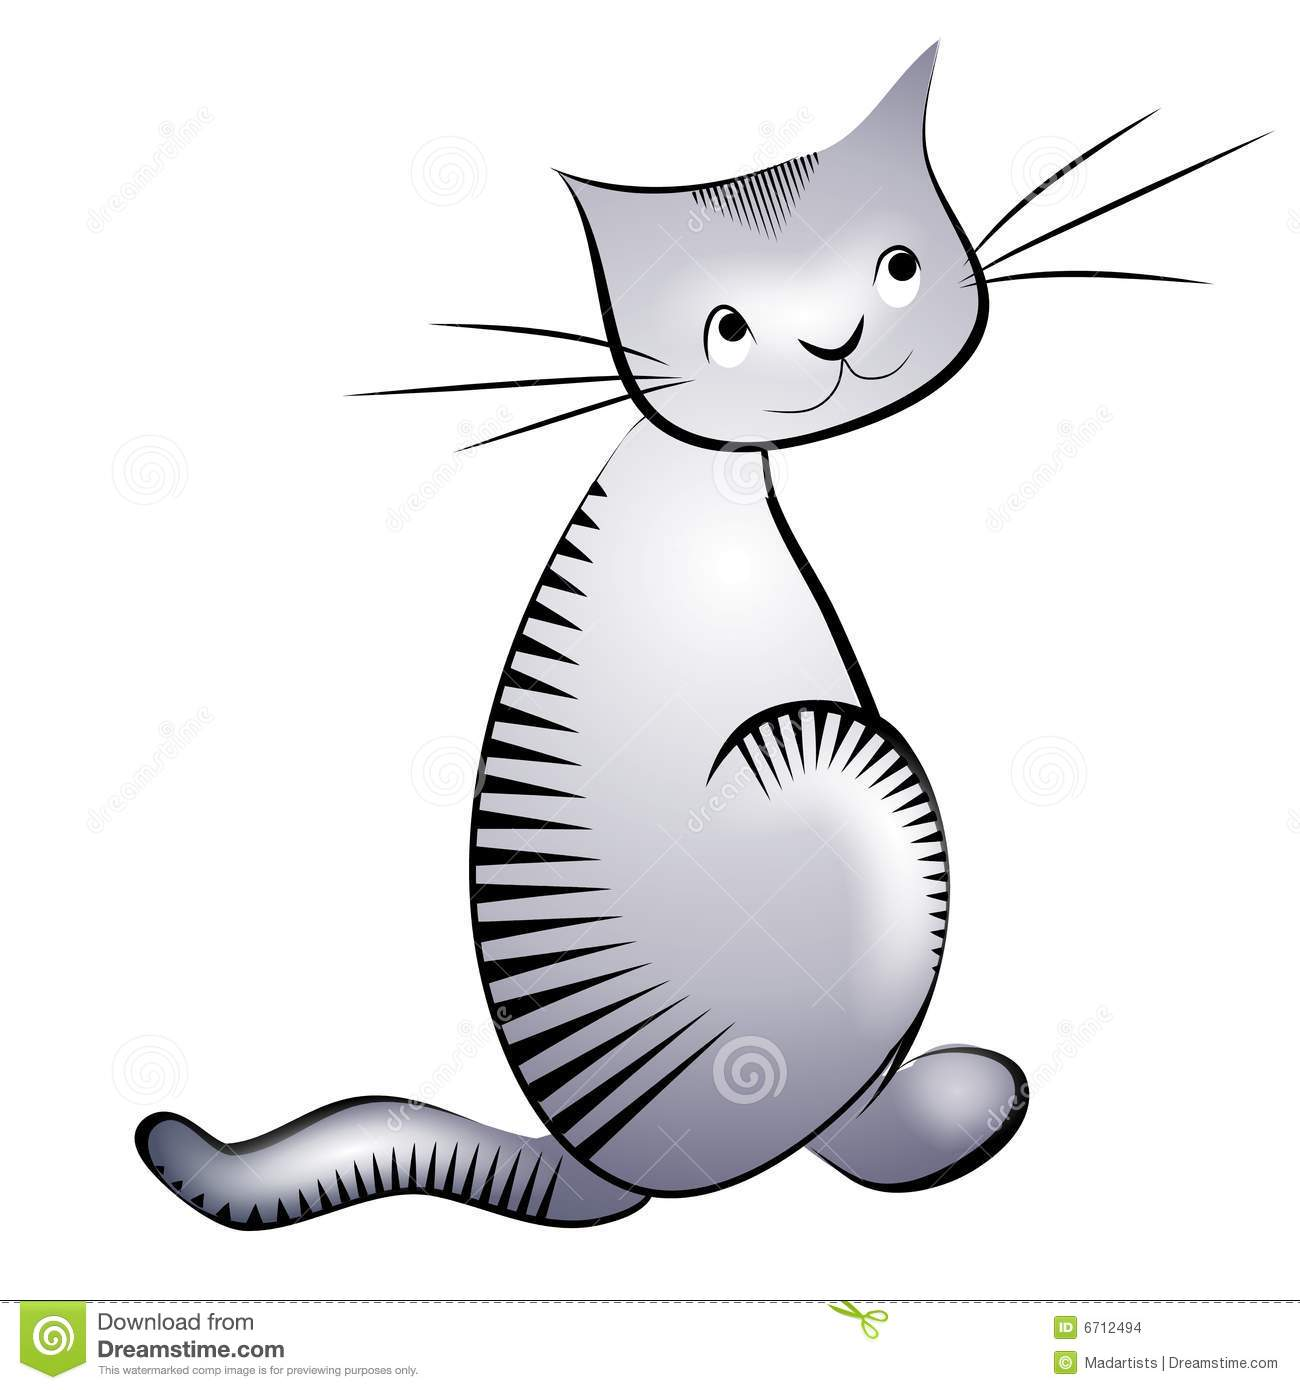 Petit chat gris illustration stock illustration du cartoons 6712494 - Petit chat dessin ...